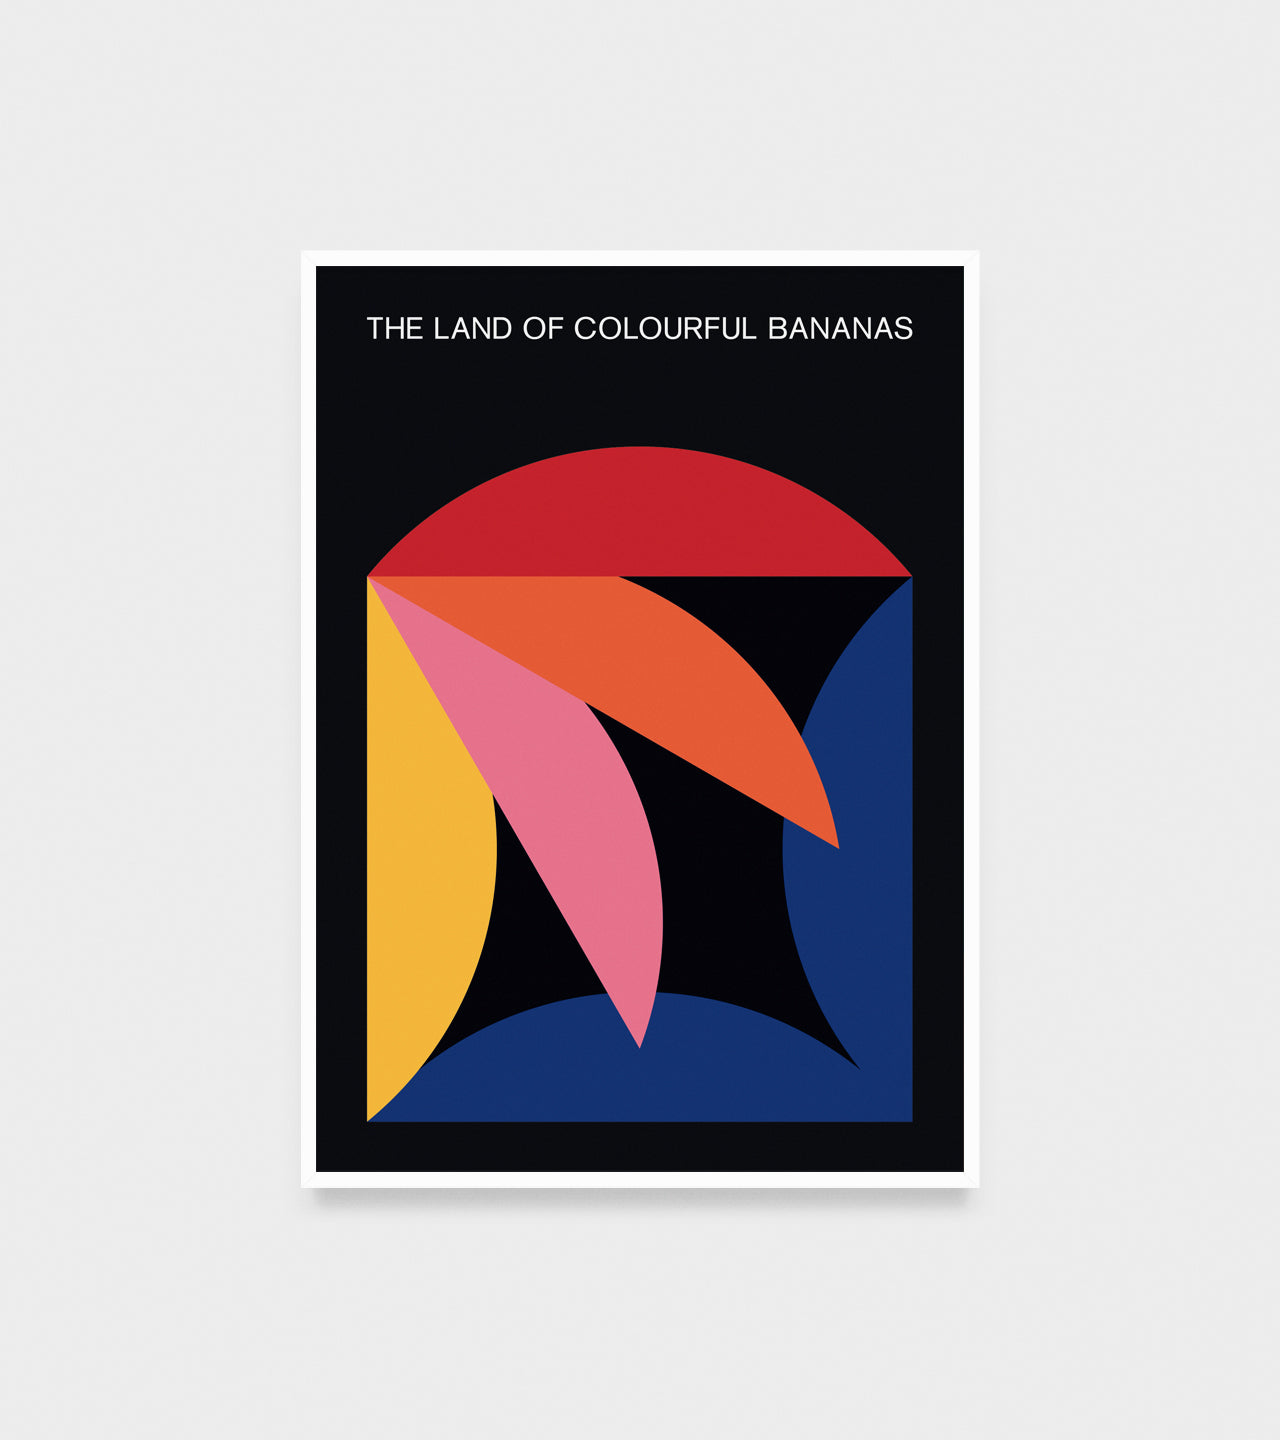 The Land of Colourful Bananas